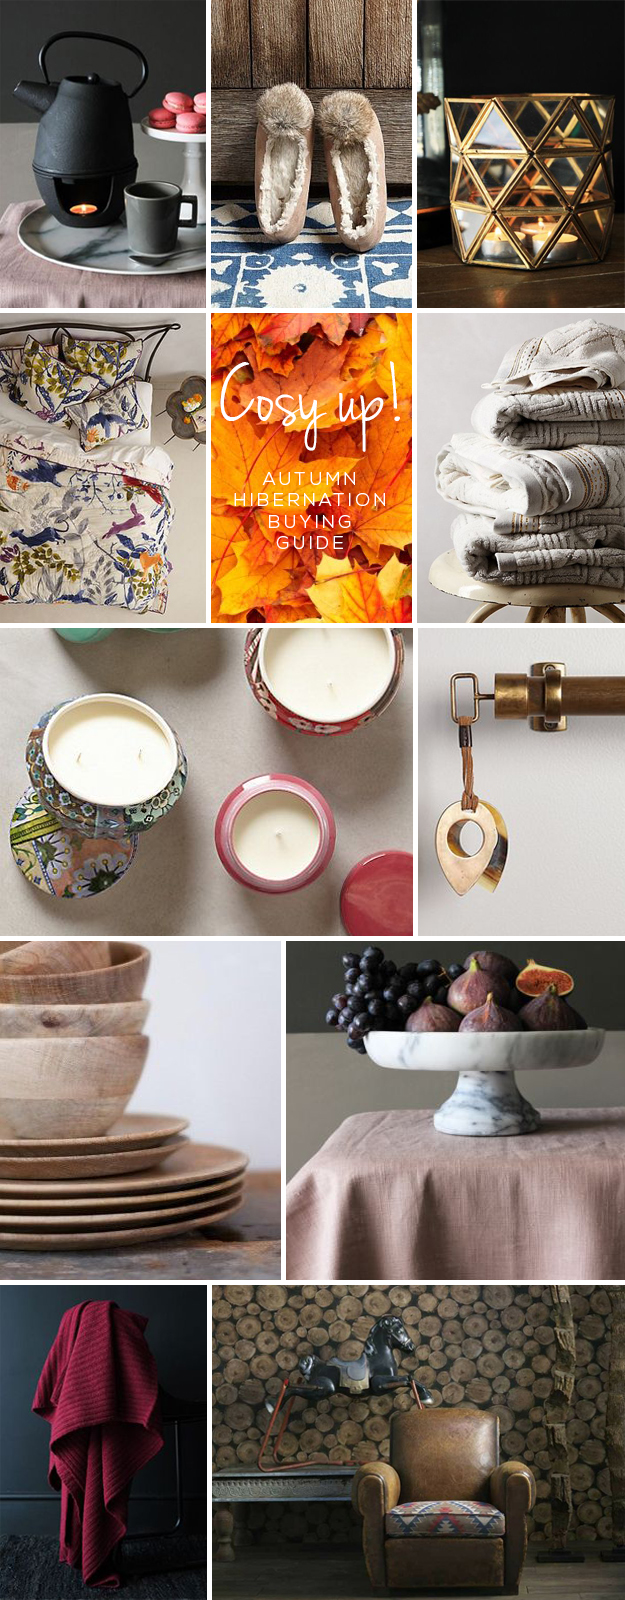 Cosy Up this Autumn Buying Guide